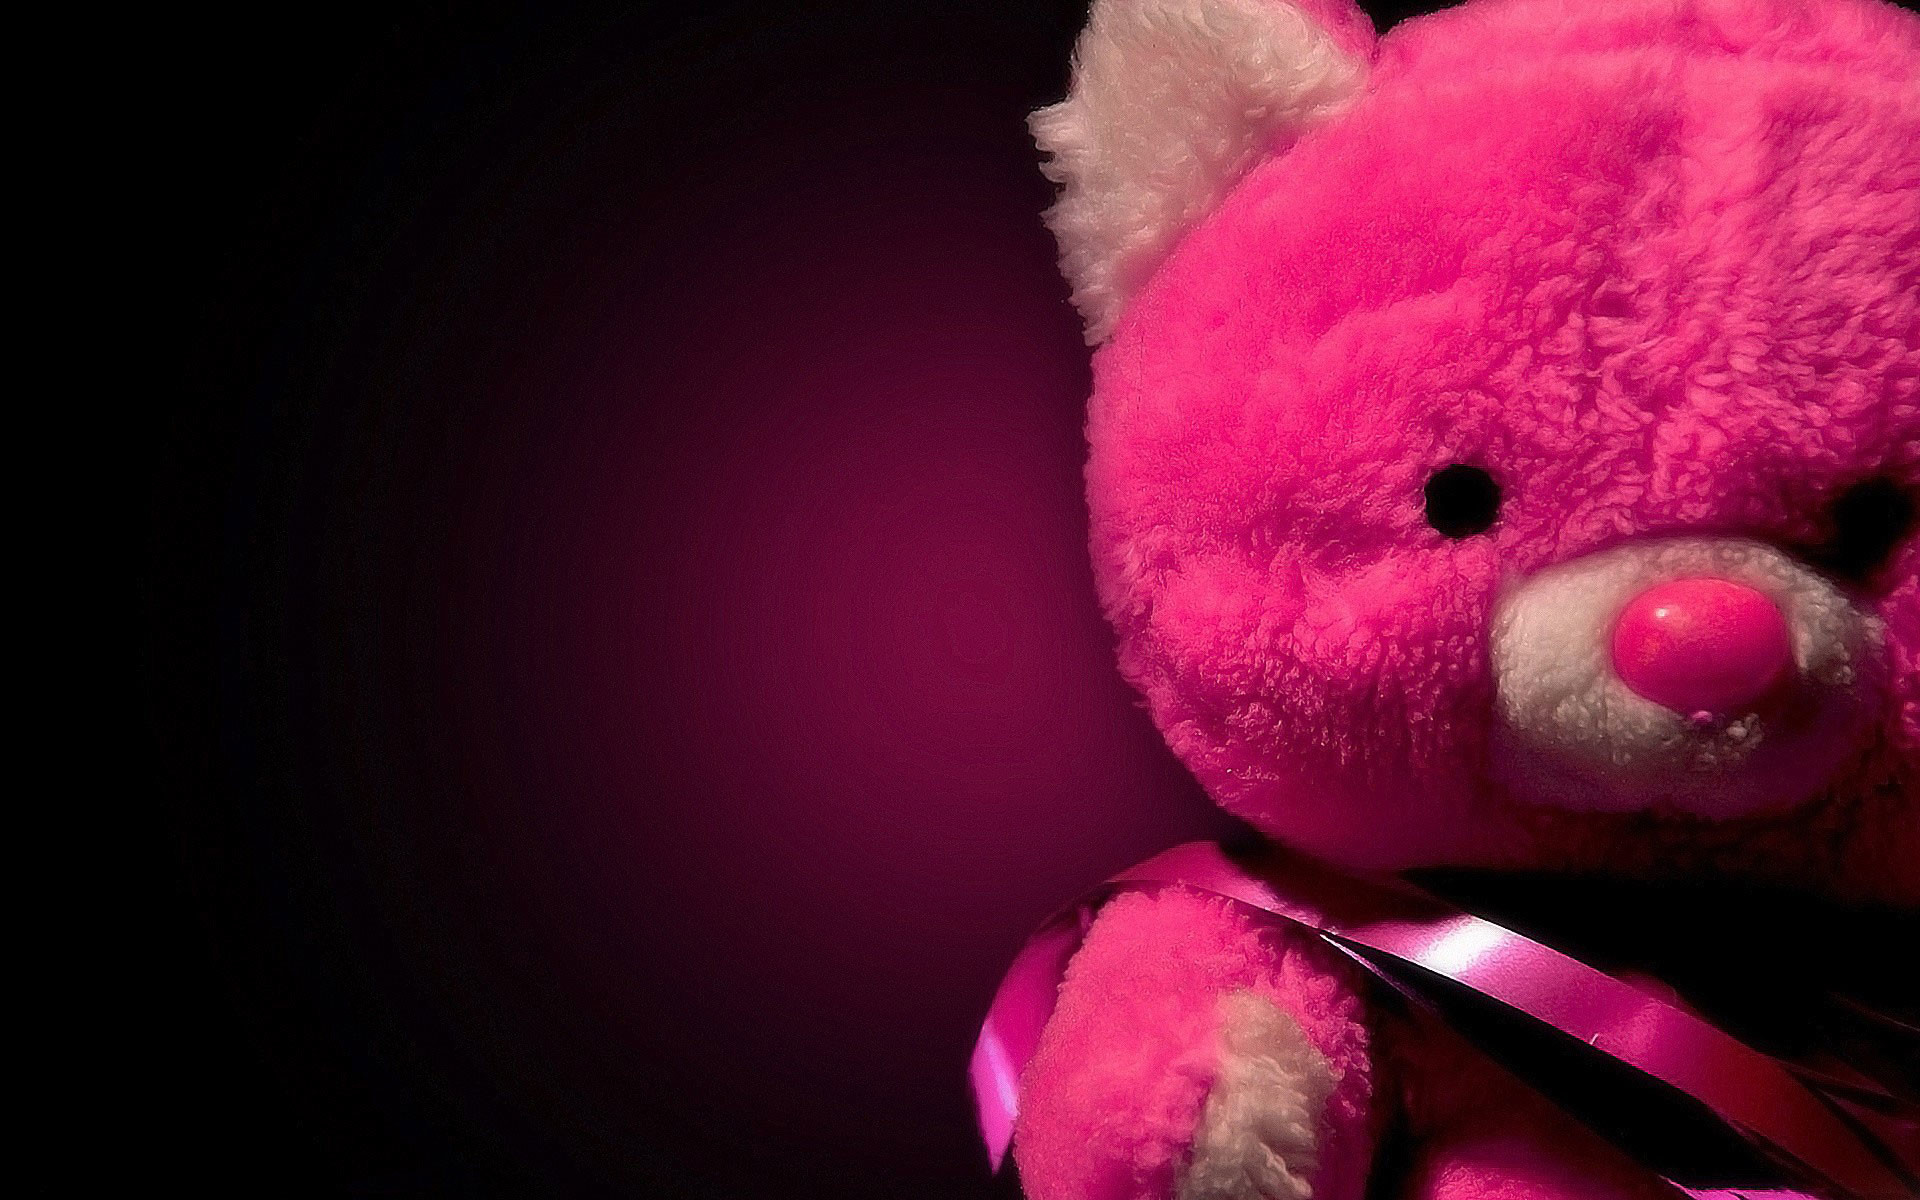 1920x1200 pink teddy bear love desktop wallpaper download pink teddy bear love .